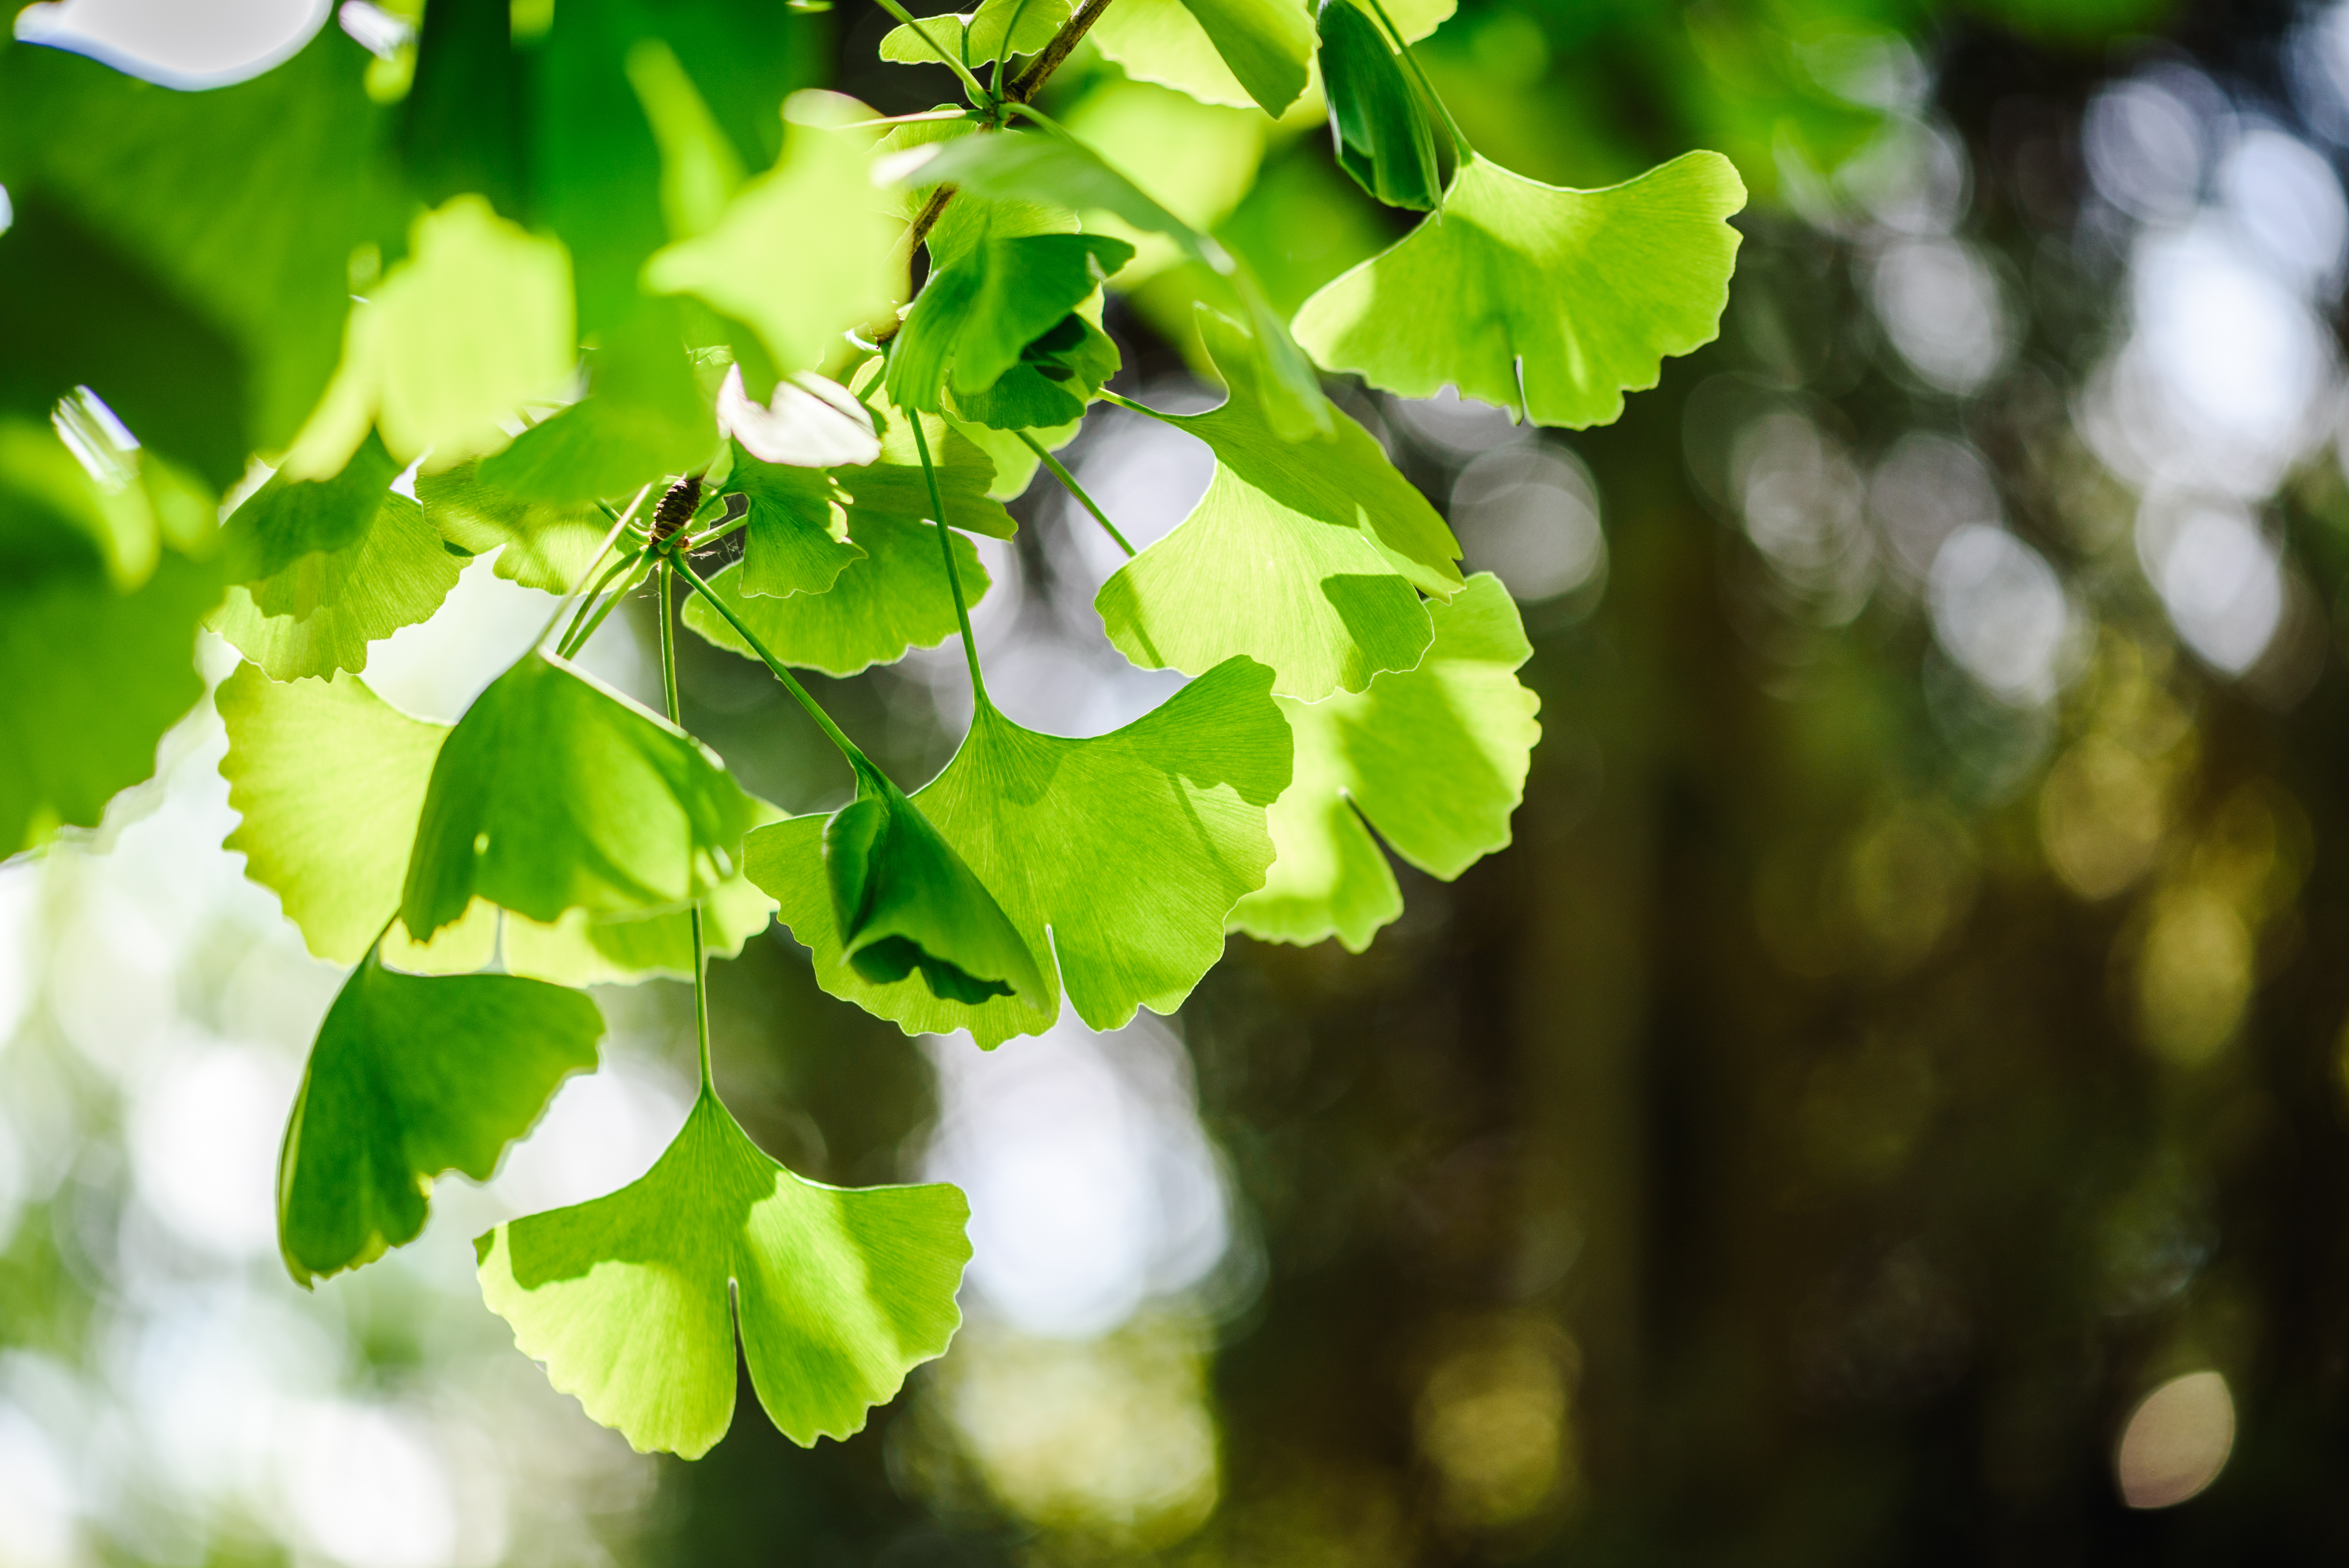 The extracts of ginkgo leaves contain bioactives including flavonoids and terpenoids that are thought to drive health benefits.